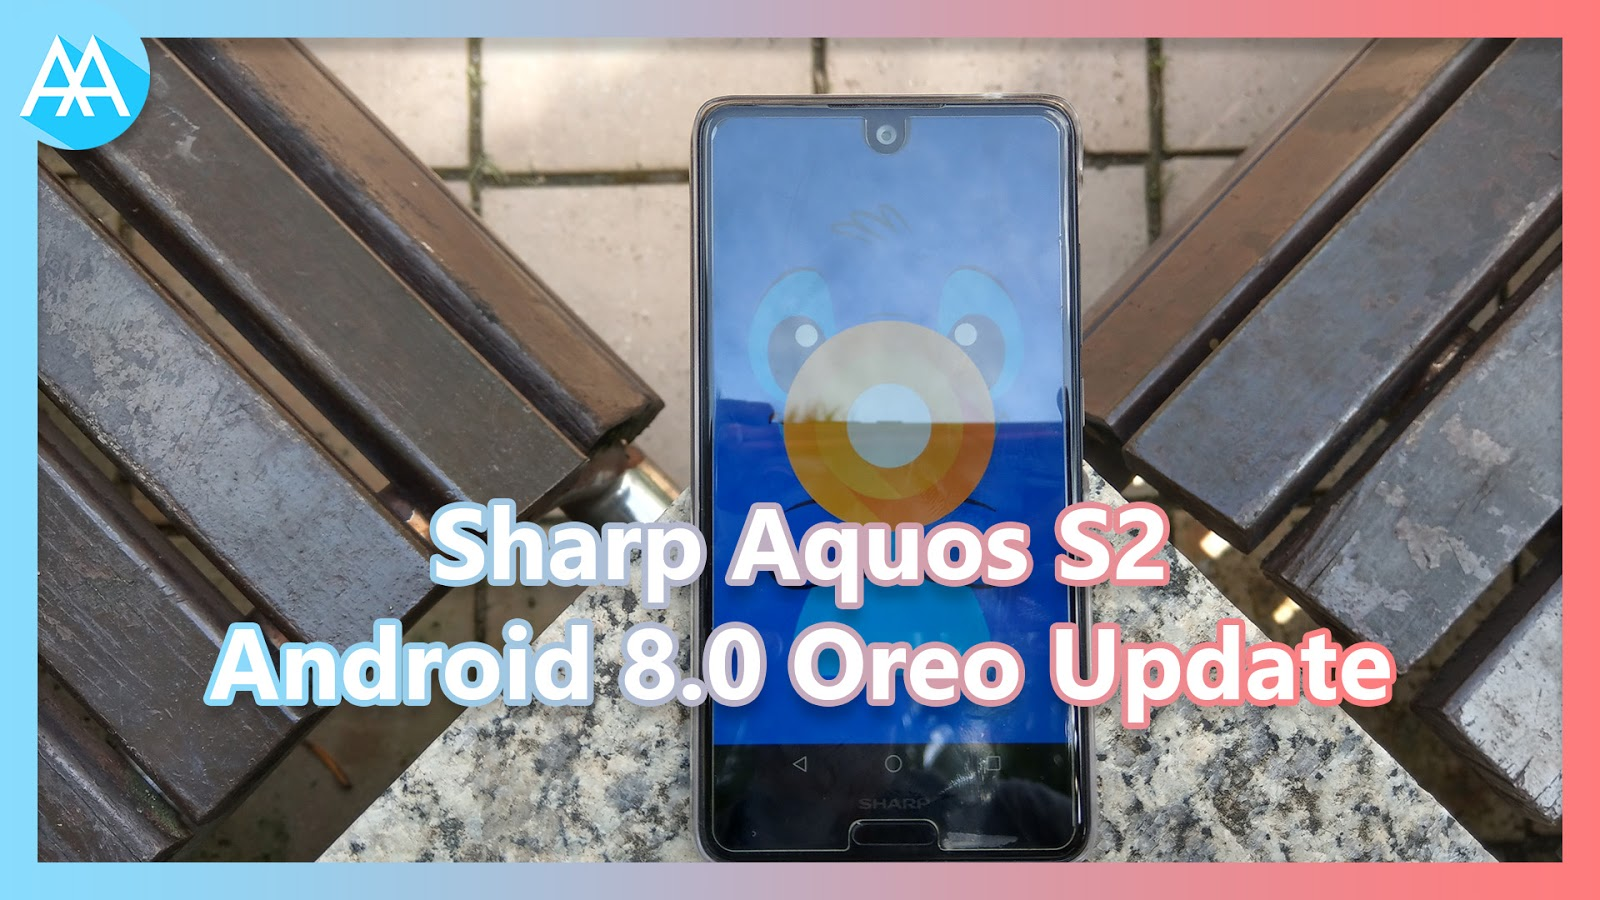 Sharp Aquos S2 Android 8 0 Oreo Update | Mister Techs